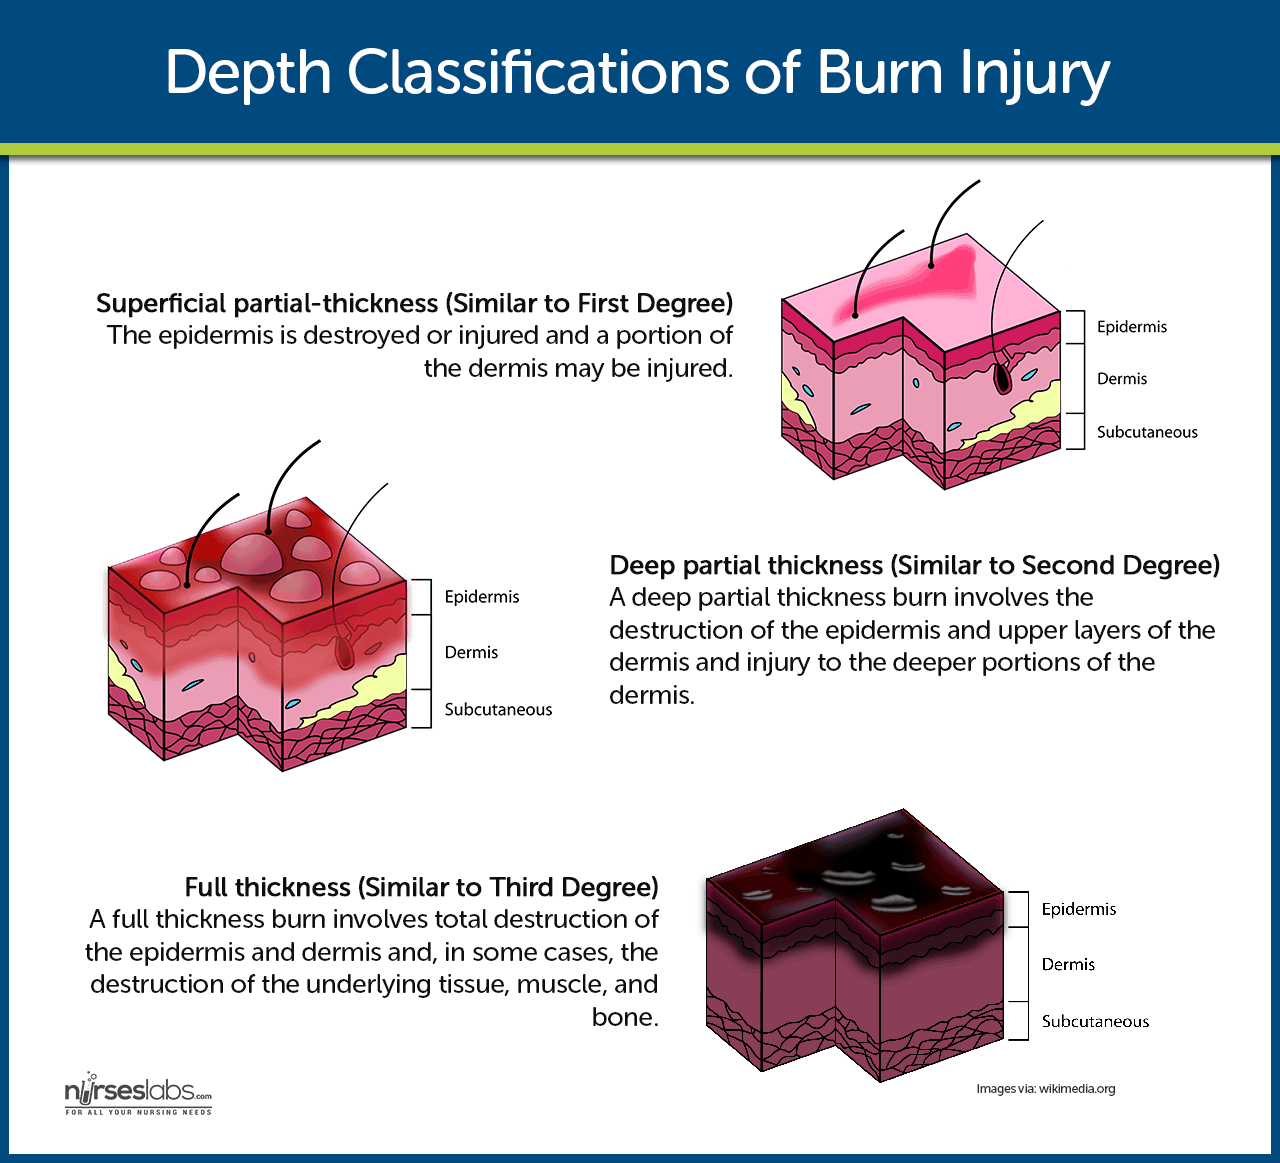 Classifications of Burn Injury By Depth